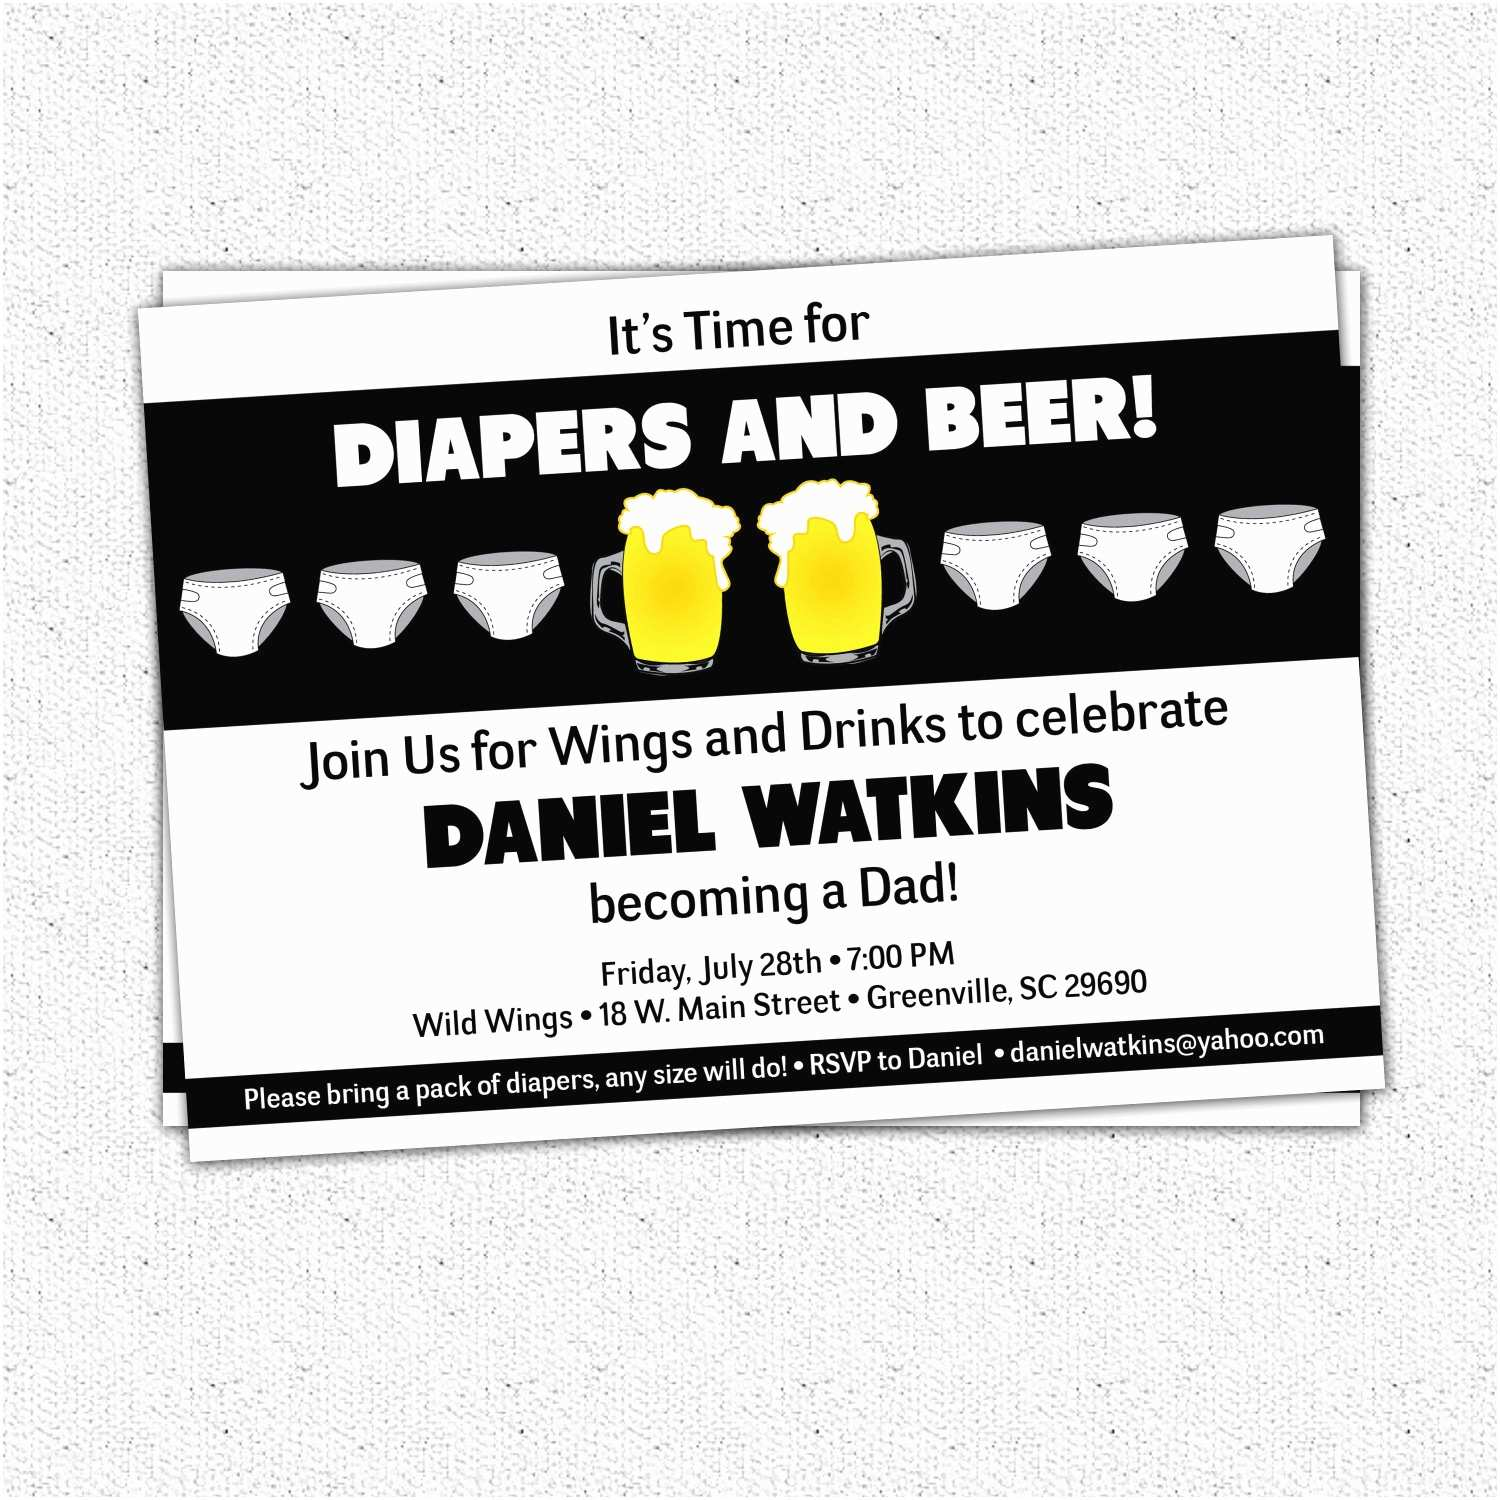 Diaper Party Invitations Chuggies Beer and Diaper Party Invitations Babies for